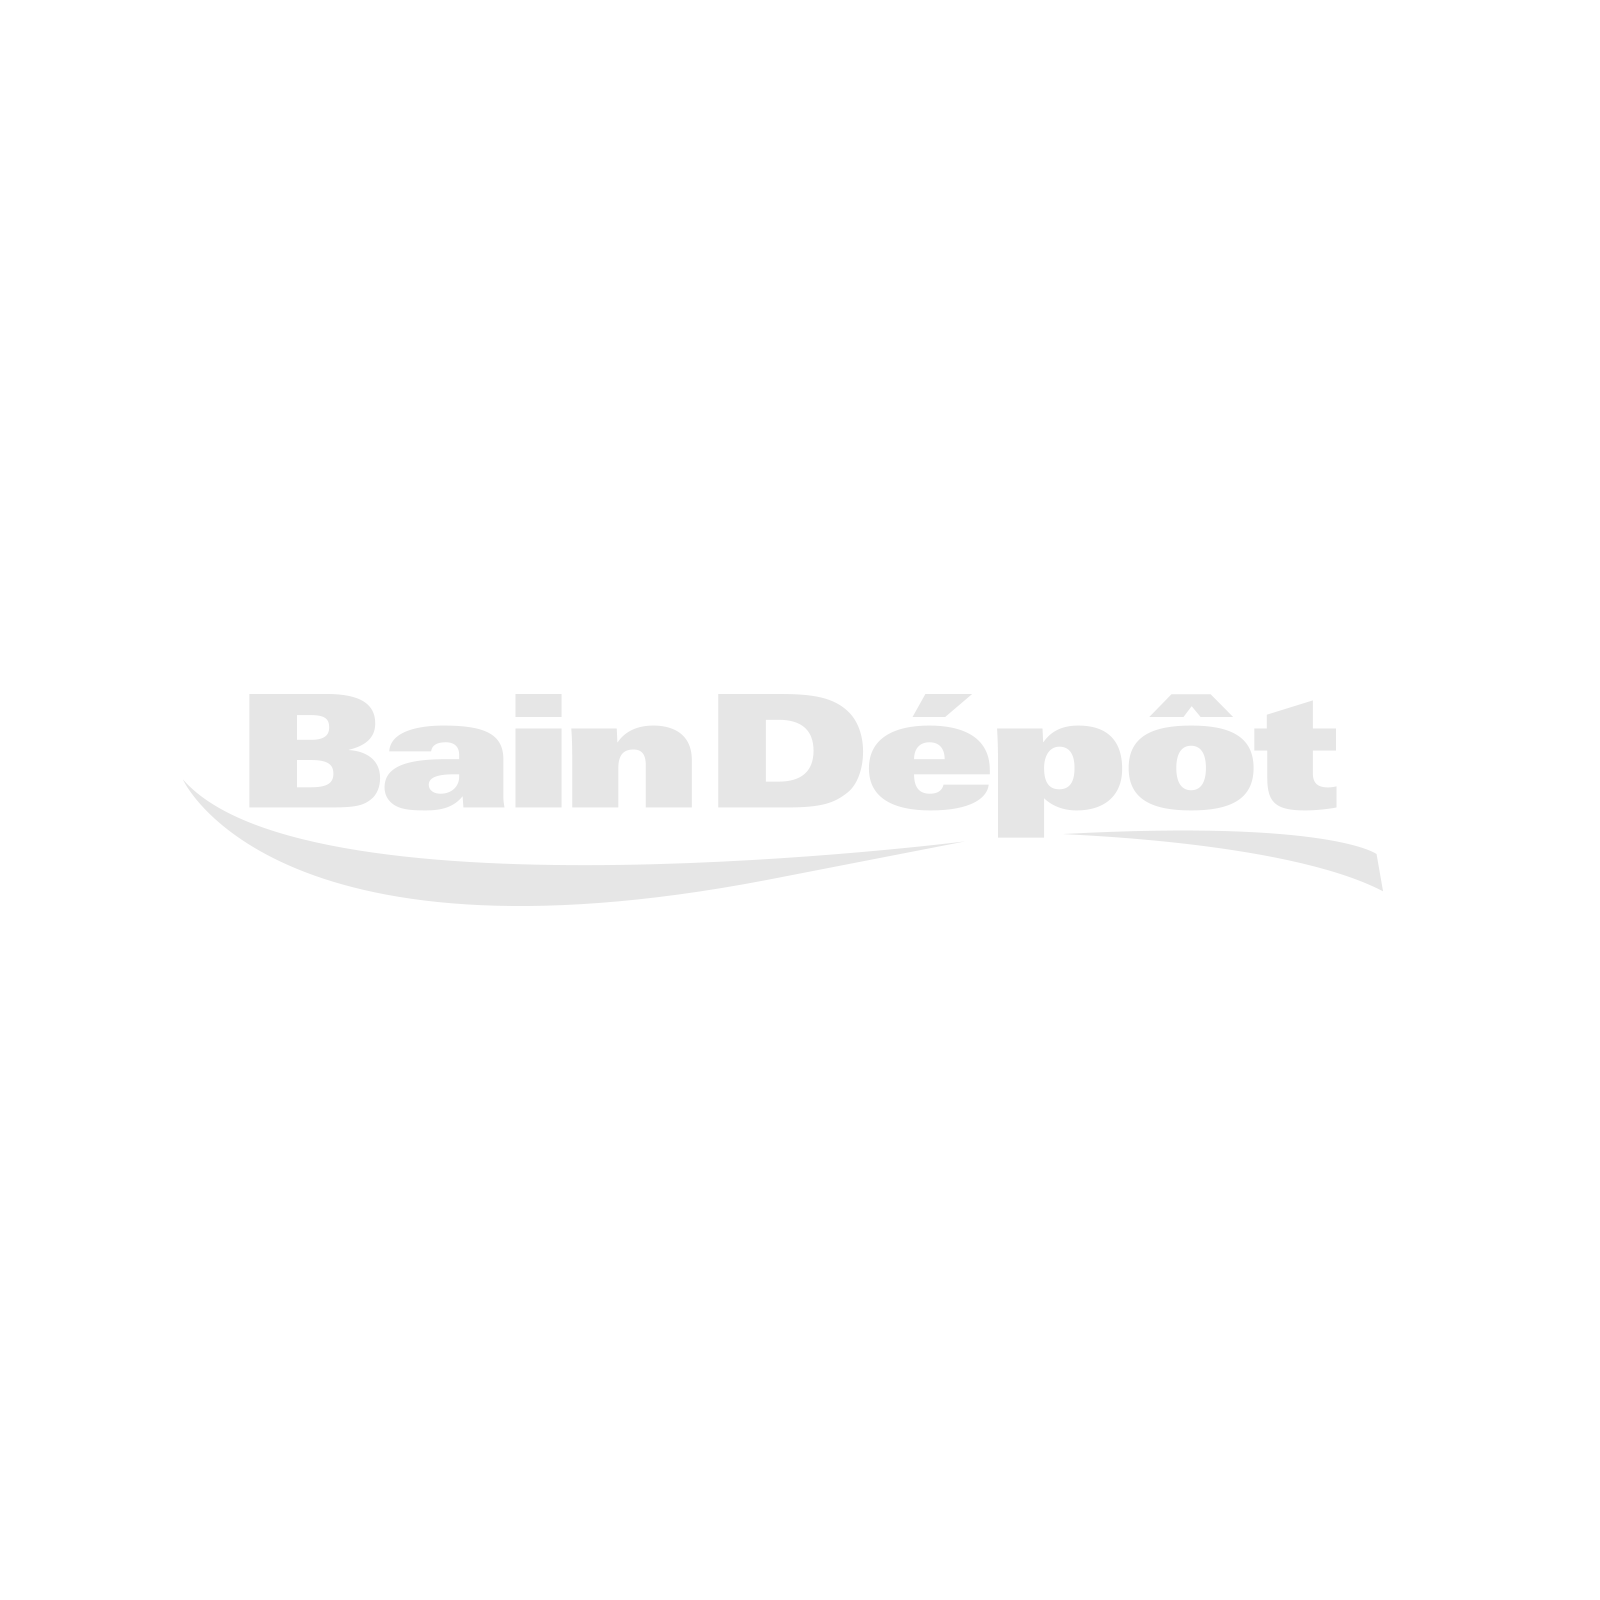 "MELIA 67"" freestanding bathtub with vibroair jets"